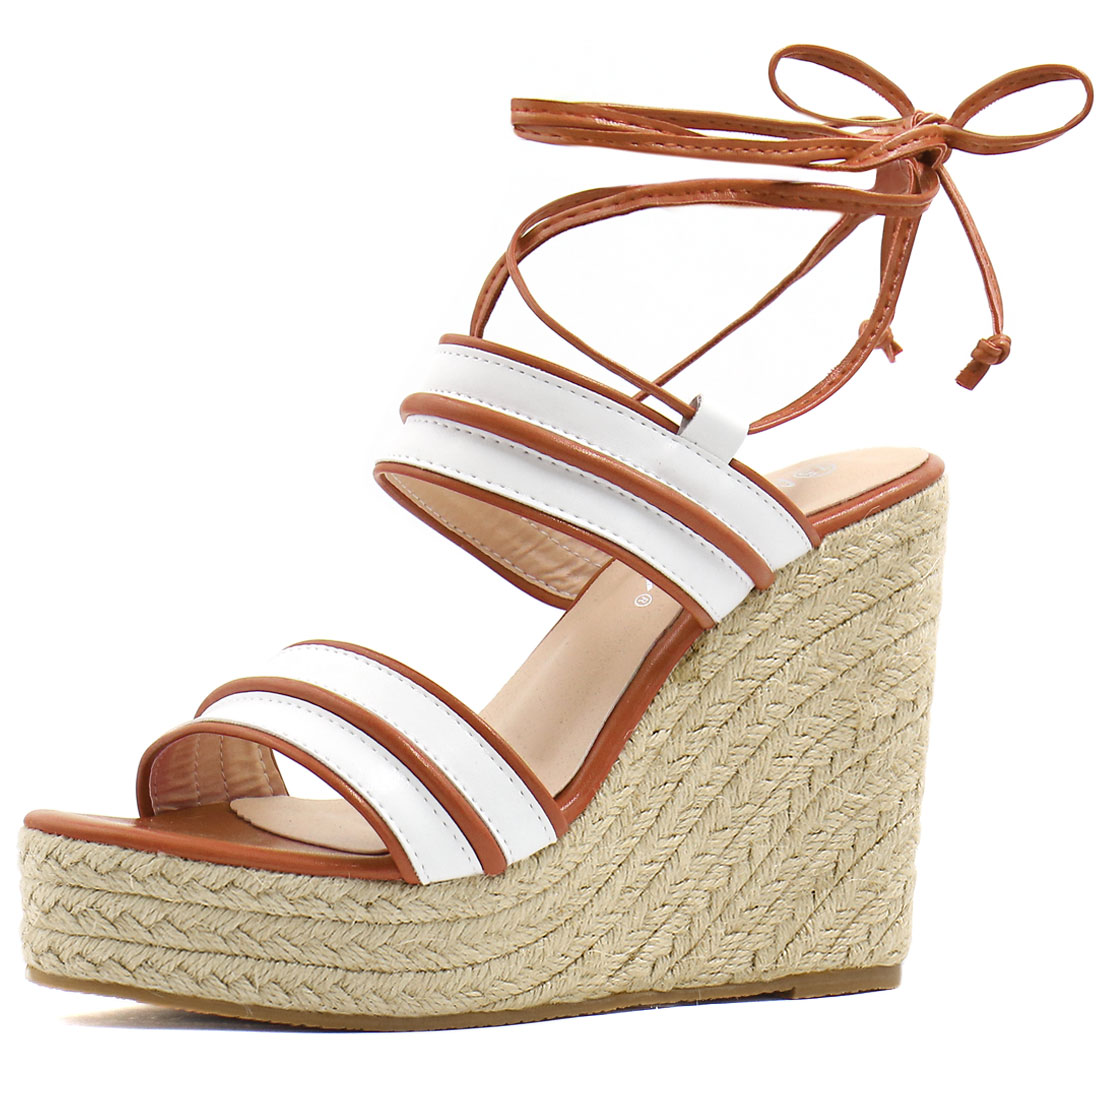 Women Striped Ankle Tie Espadrille Wedge Sandals White Camel US 9